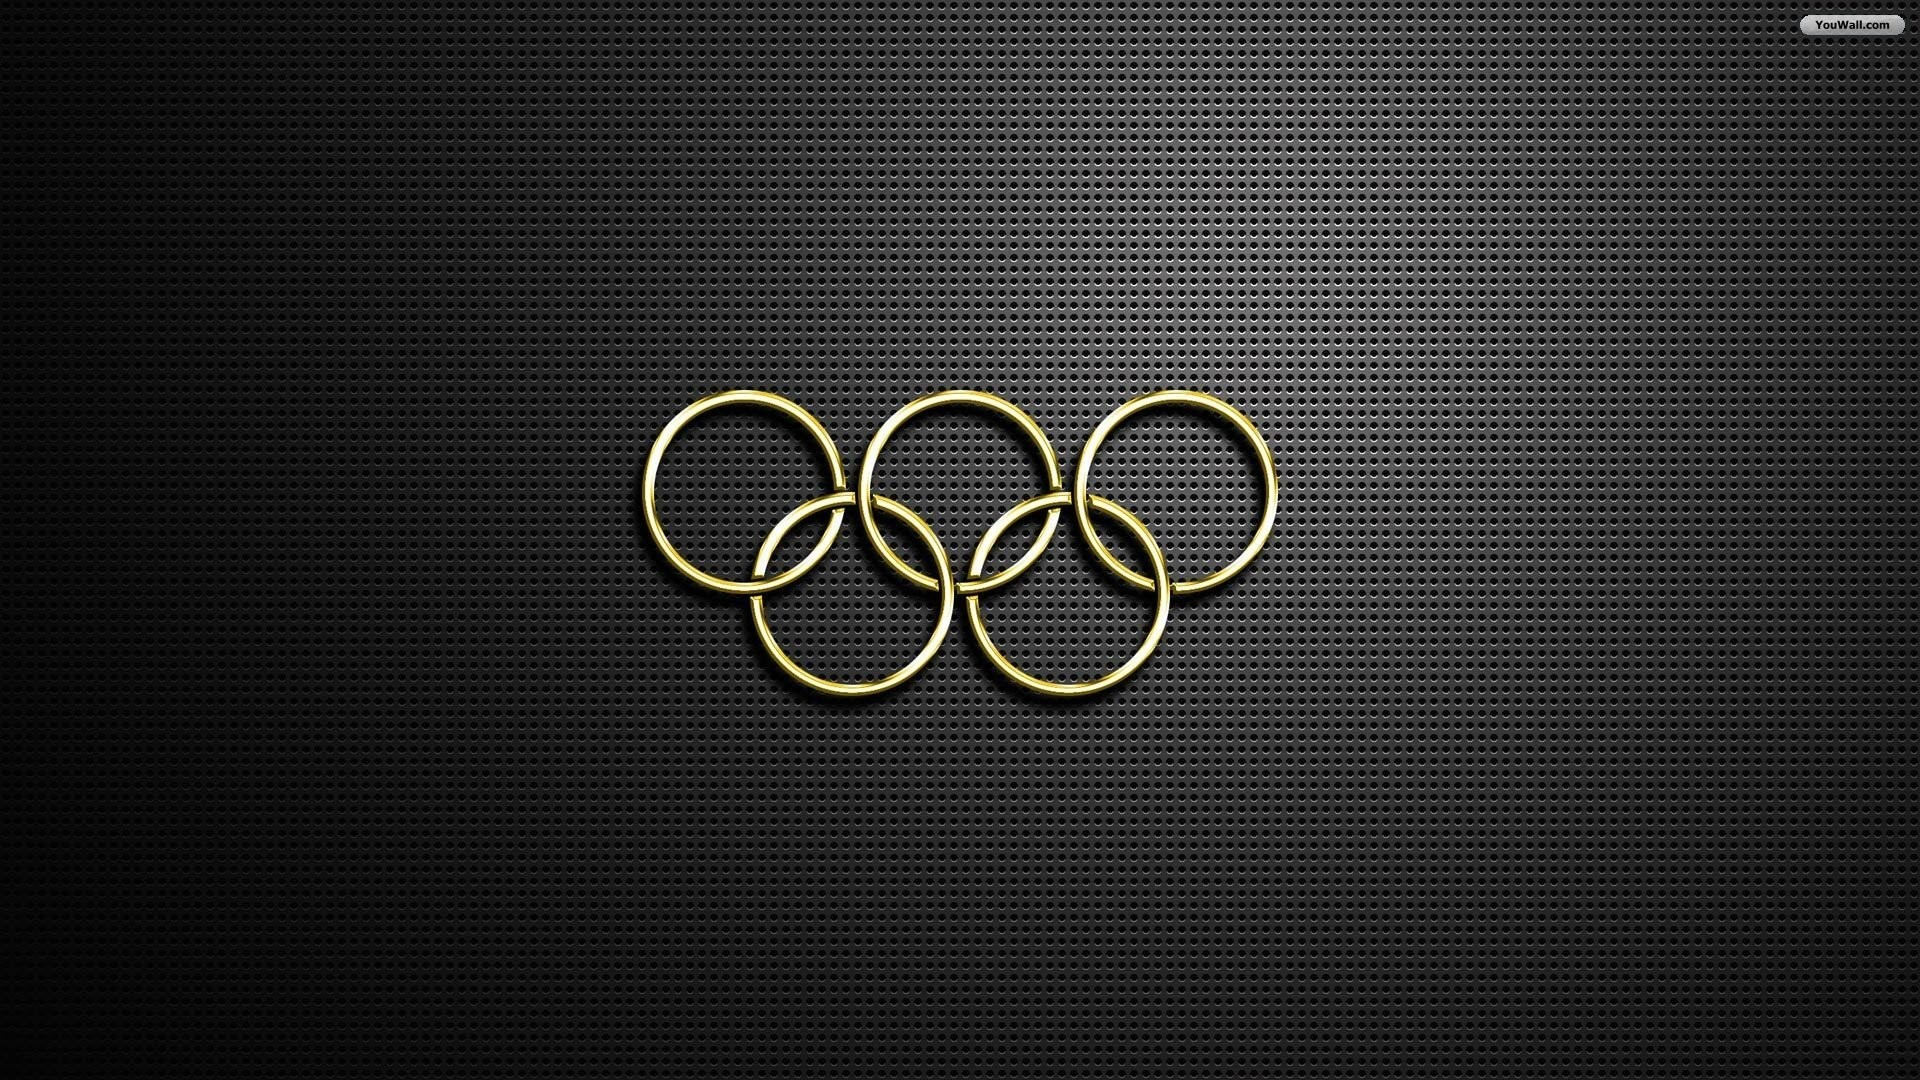 1920x1080 London Olympics 2012 Weightlifting; weightlifting